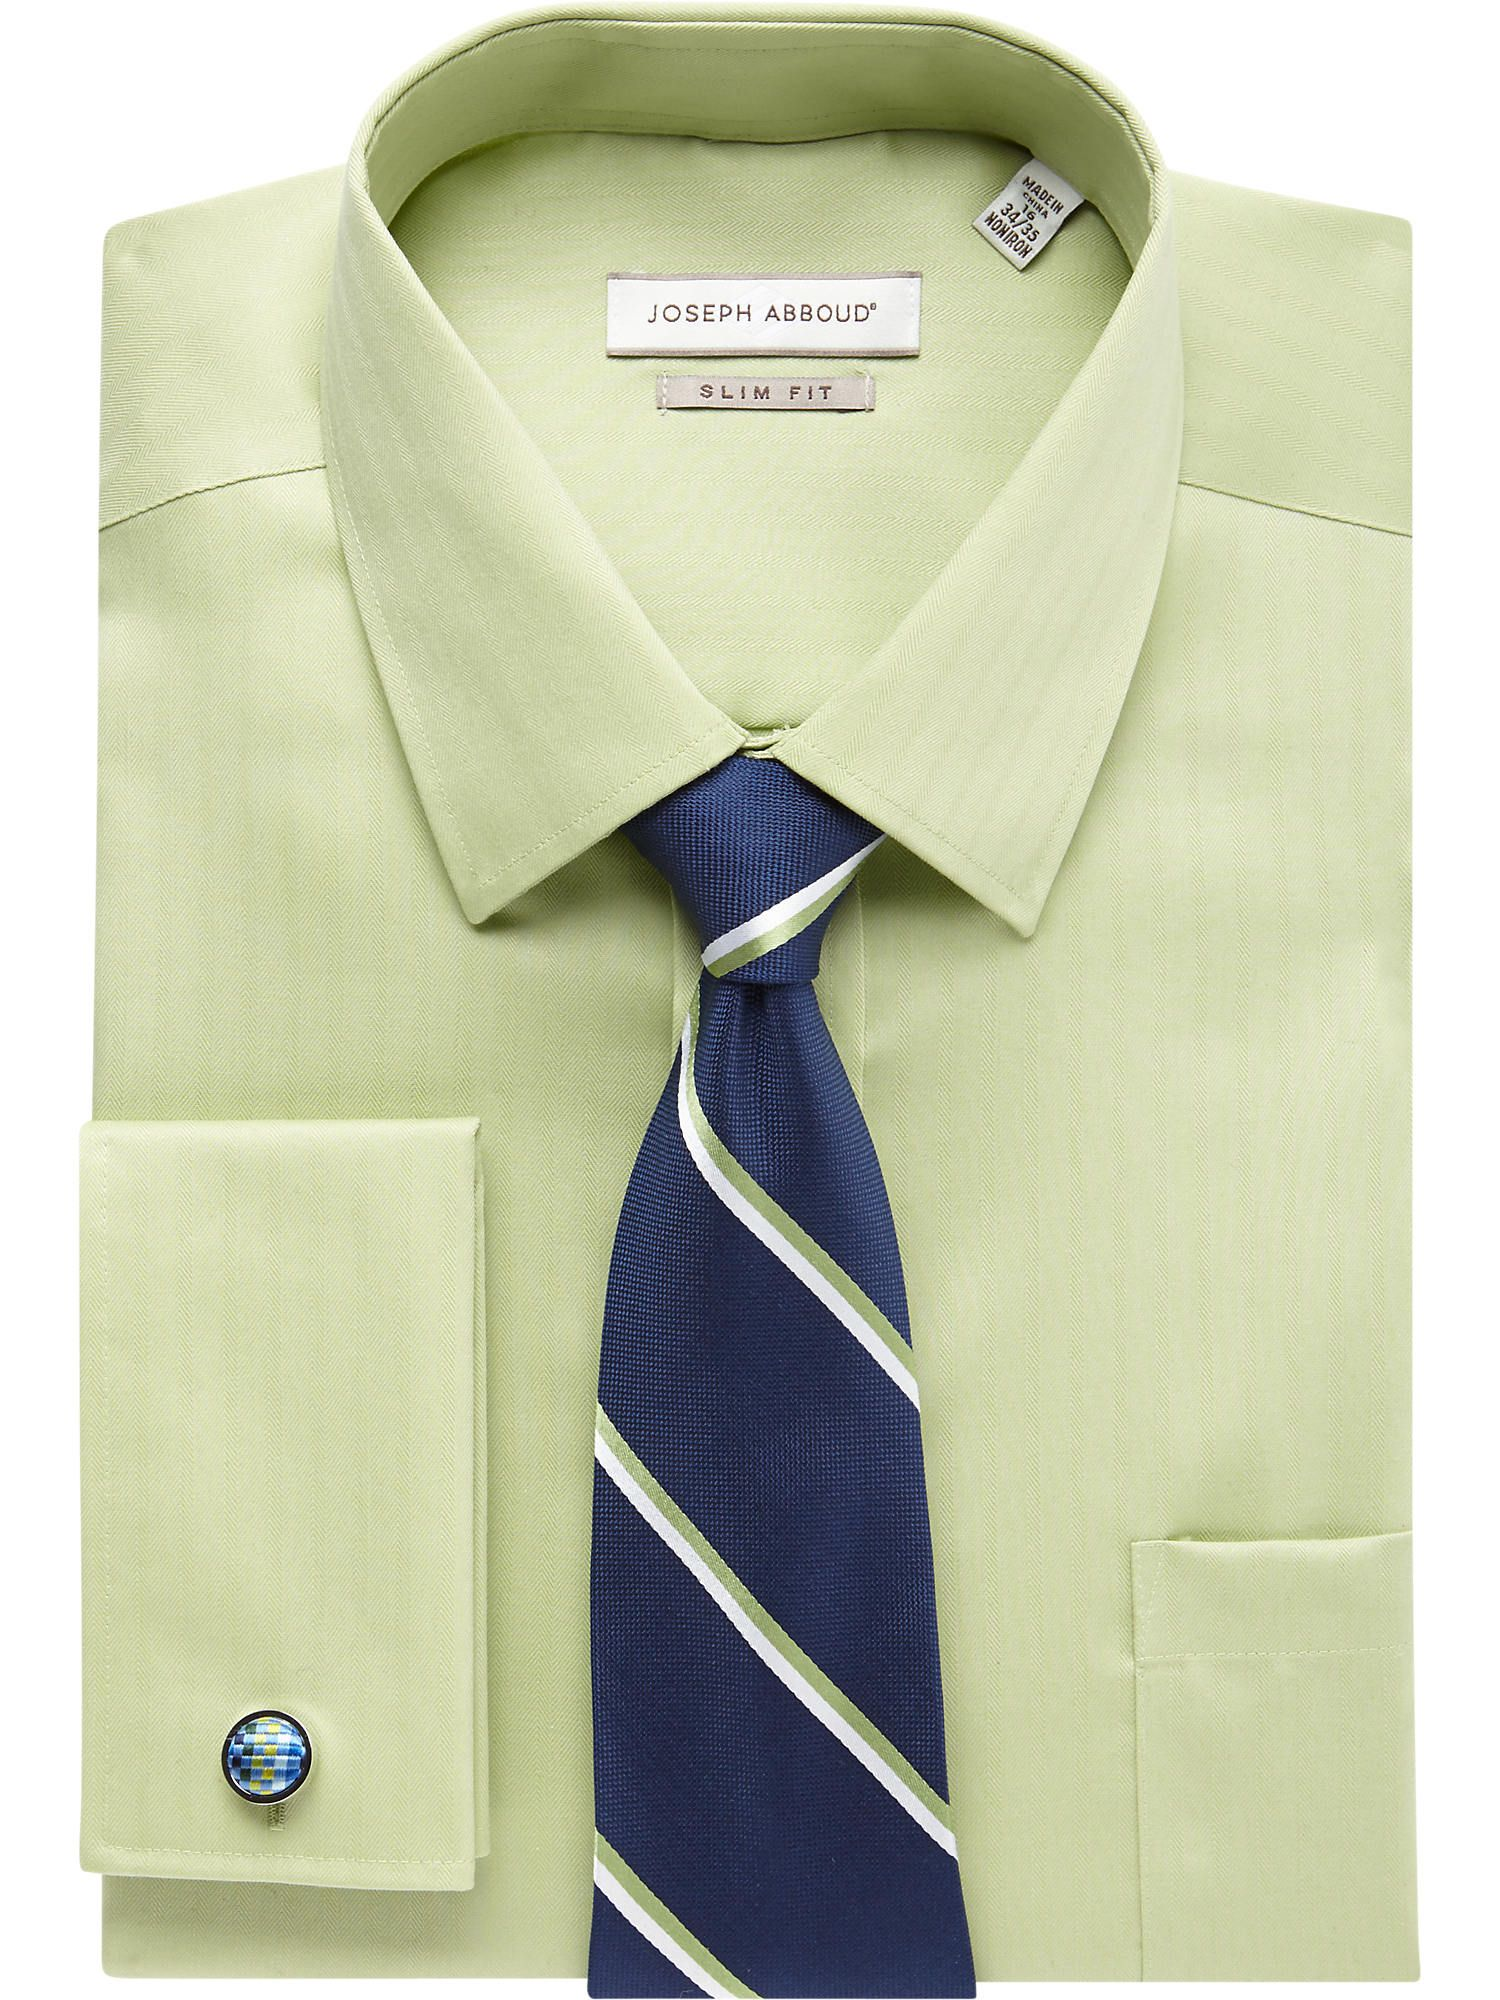 e82cfc9a Light Green Shirt & Blue Stripe Tie - Shirt and Tie Combos | Men's Wearhouse